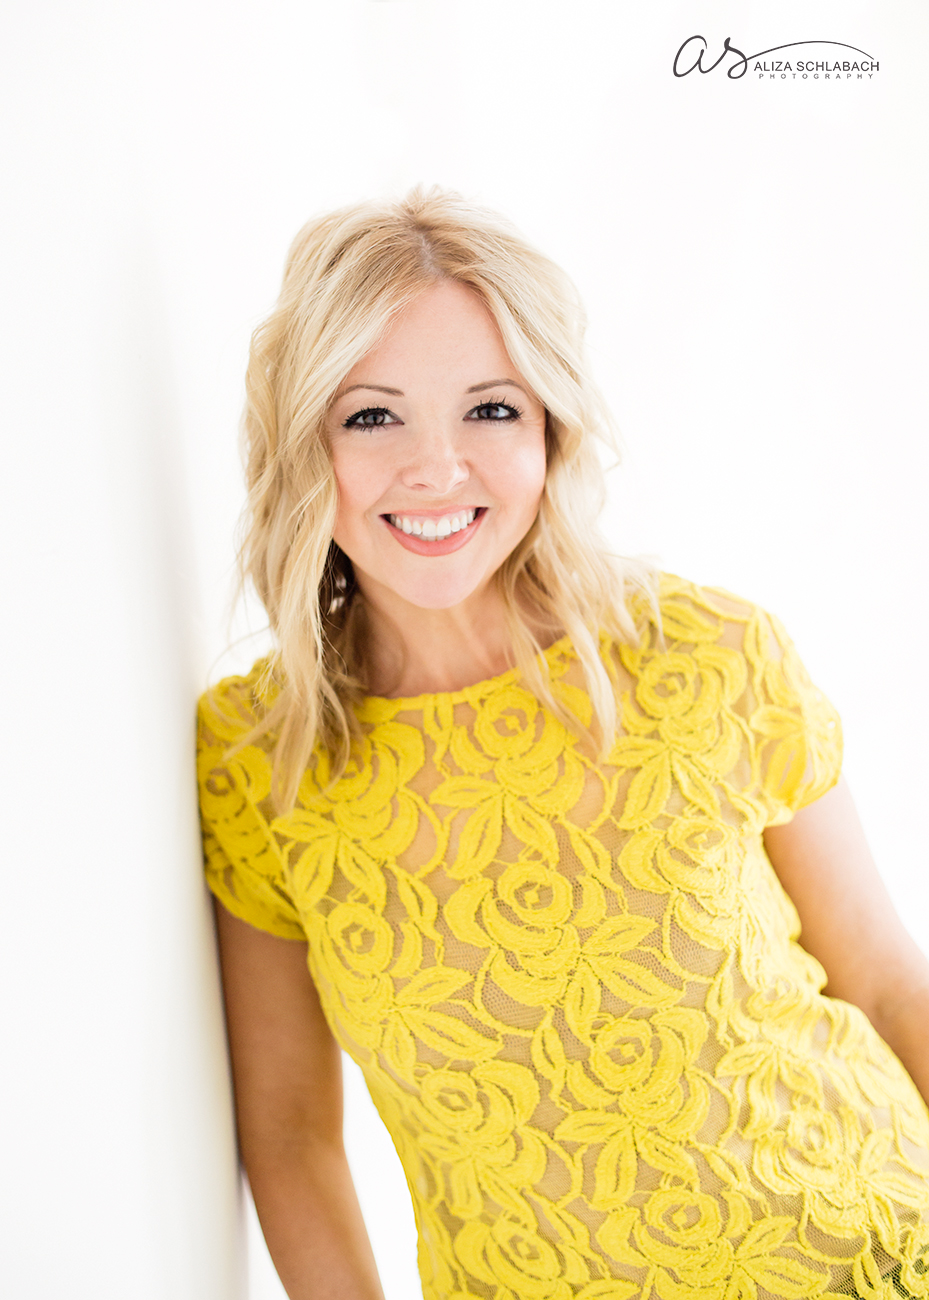 Backlit headshot of pretty blonde woman in a yellow shirt